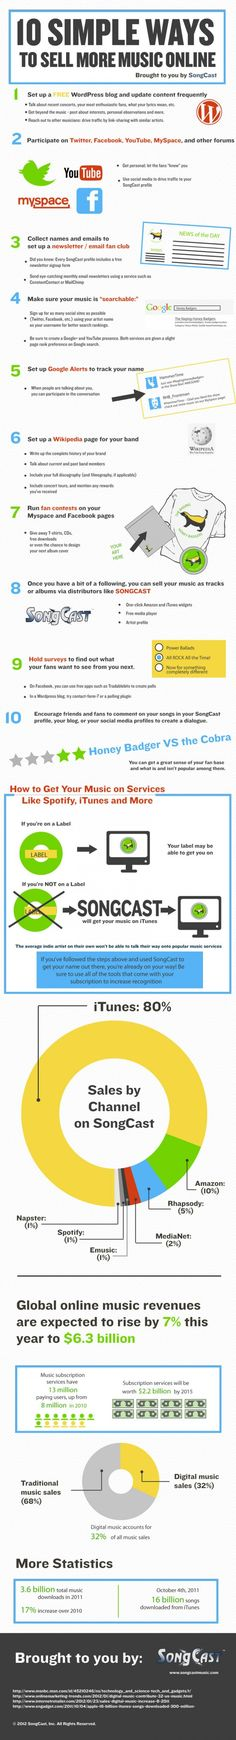 This infographic is a representation of proven music promotion techniques that help musicians and bands to sell music online. Through promotion tactics such as online, social media, merchandise and others, artists are able to connect better with their current and potential fans. I